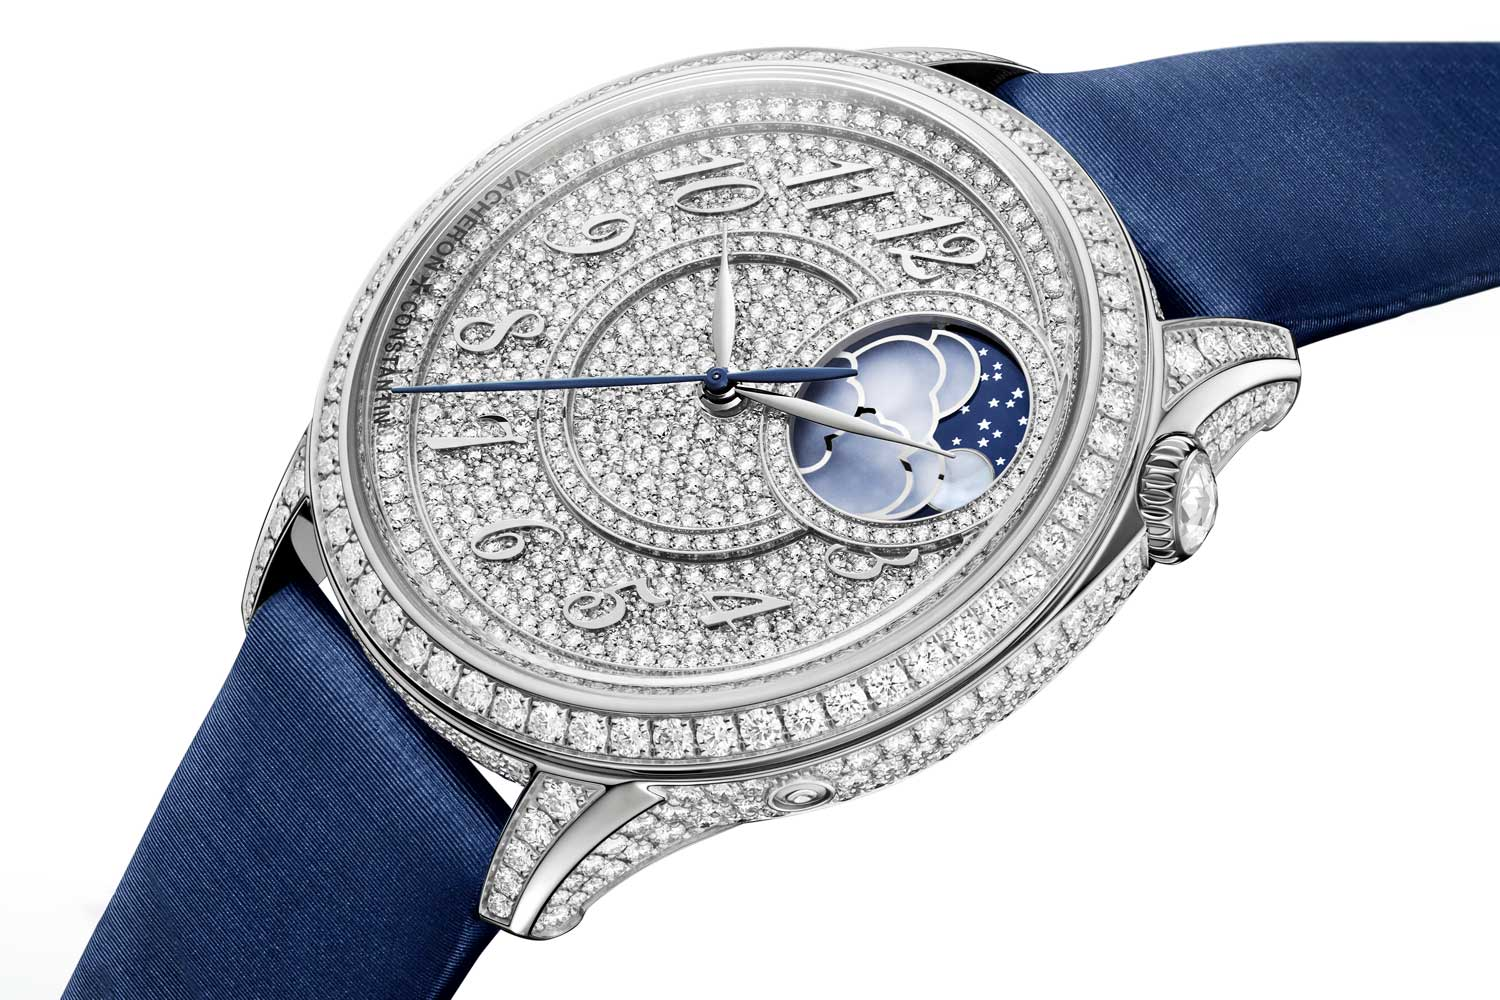 Vacheron Constantin Égérie Moon Phase Diamond-Paved